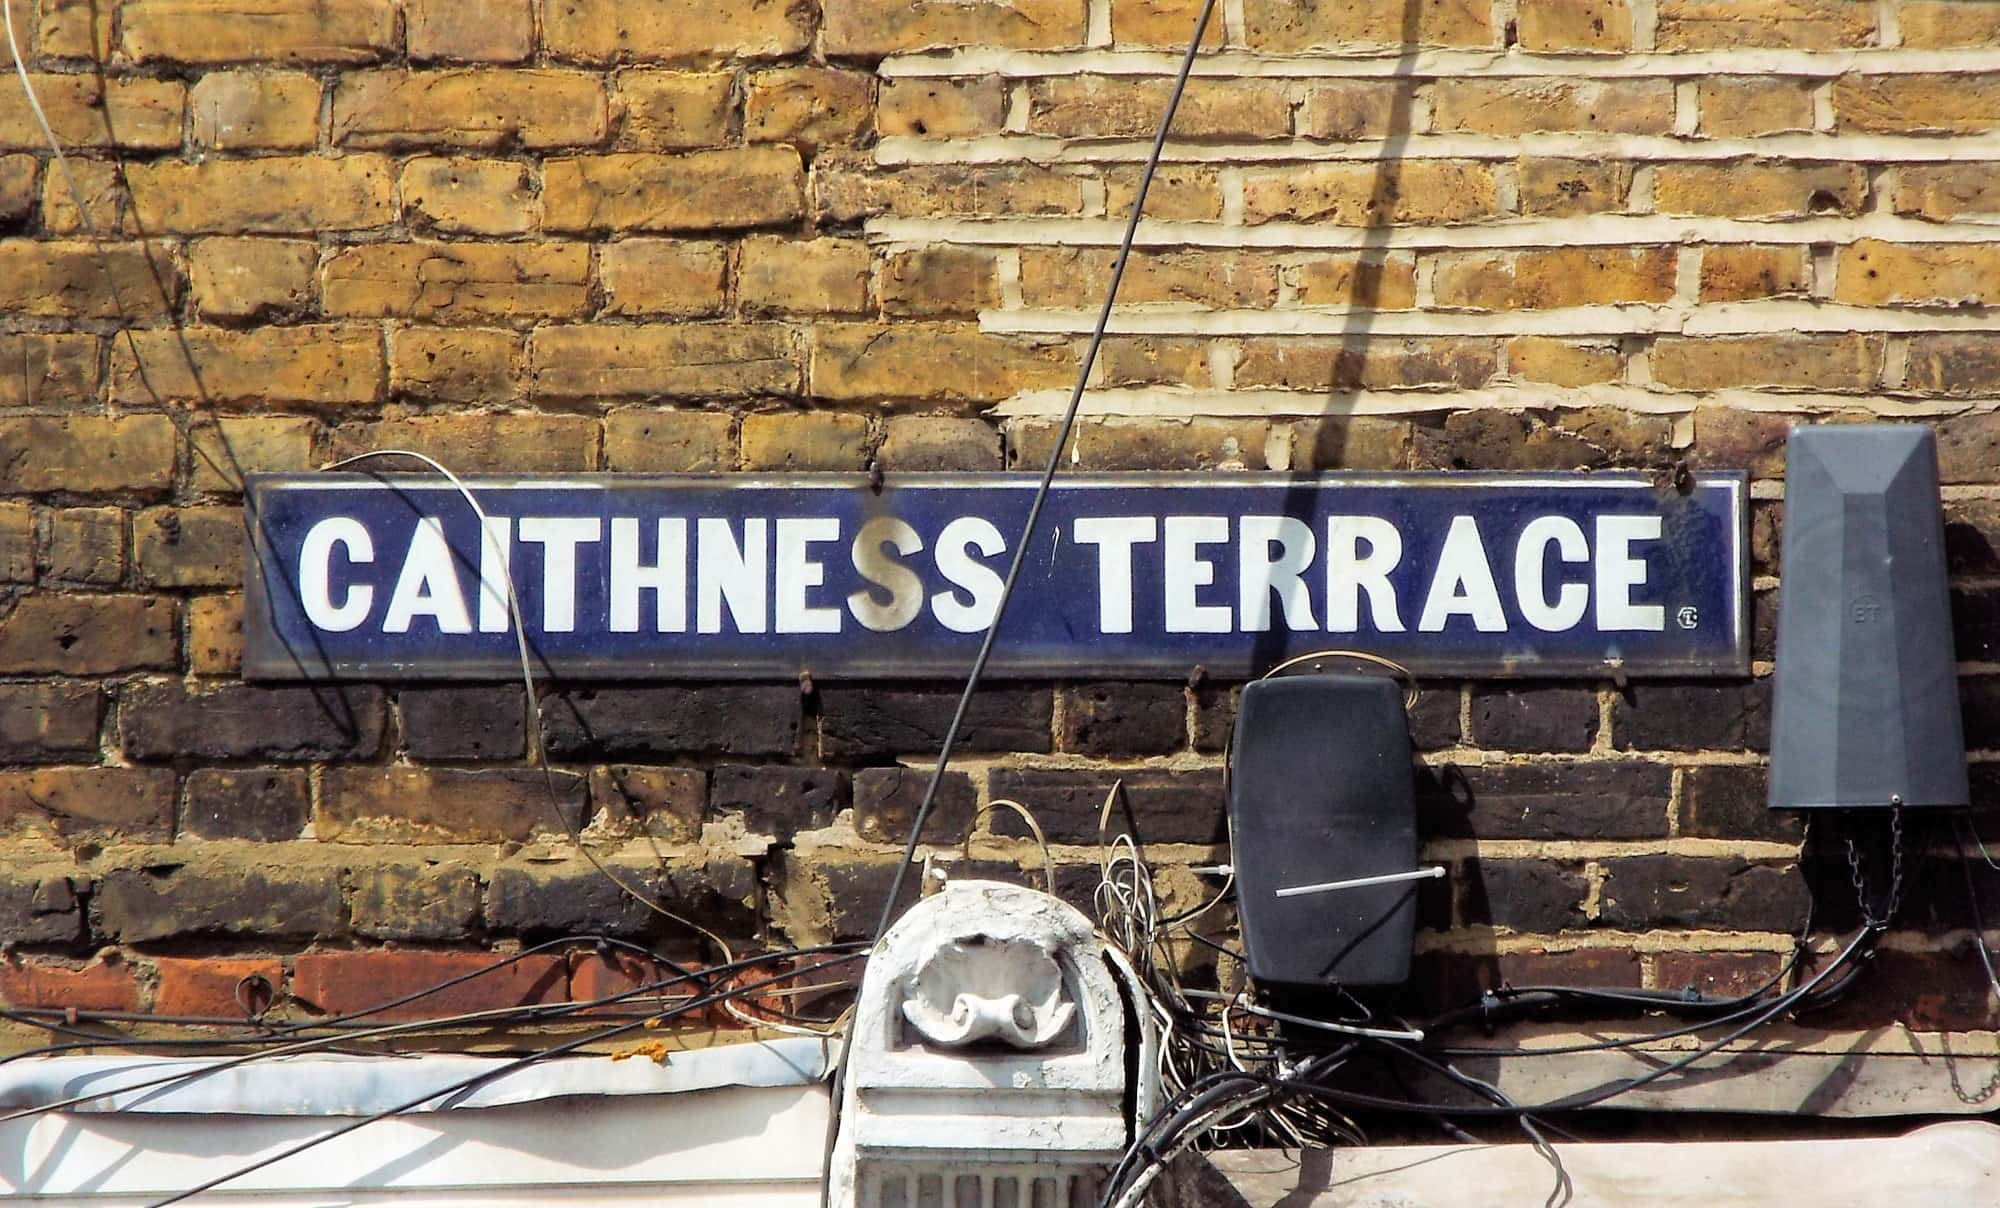 Street sign for Caithness Terrace, Tooting Bec